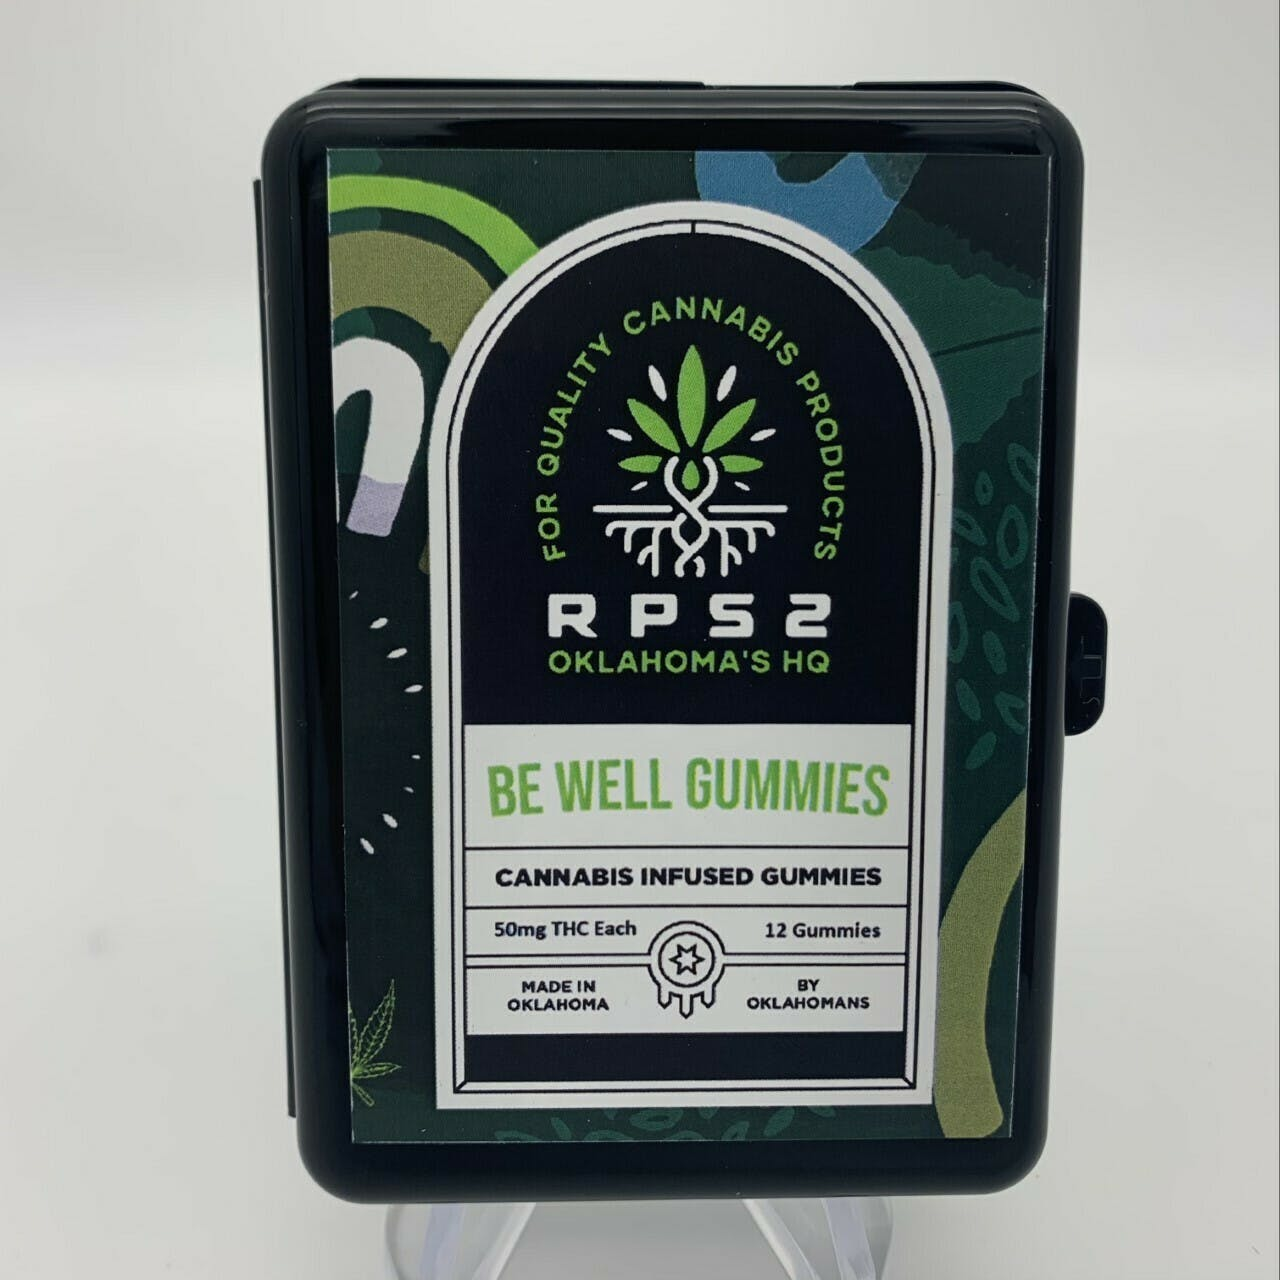 RPS2 - Delta 8 - 50mg 12 Pack Gummies - $51 OTD